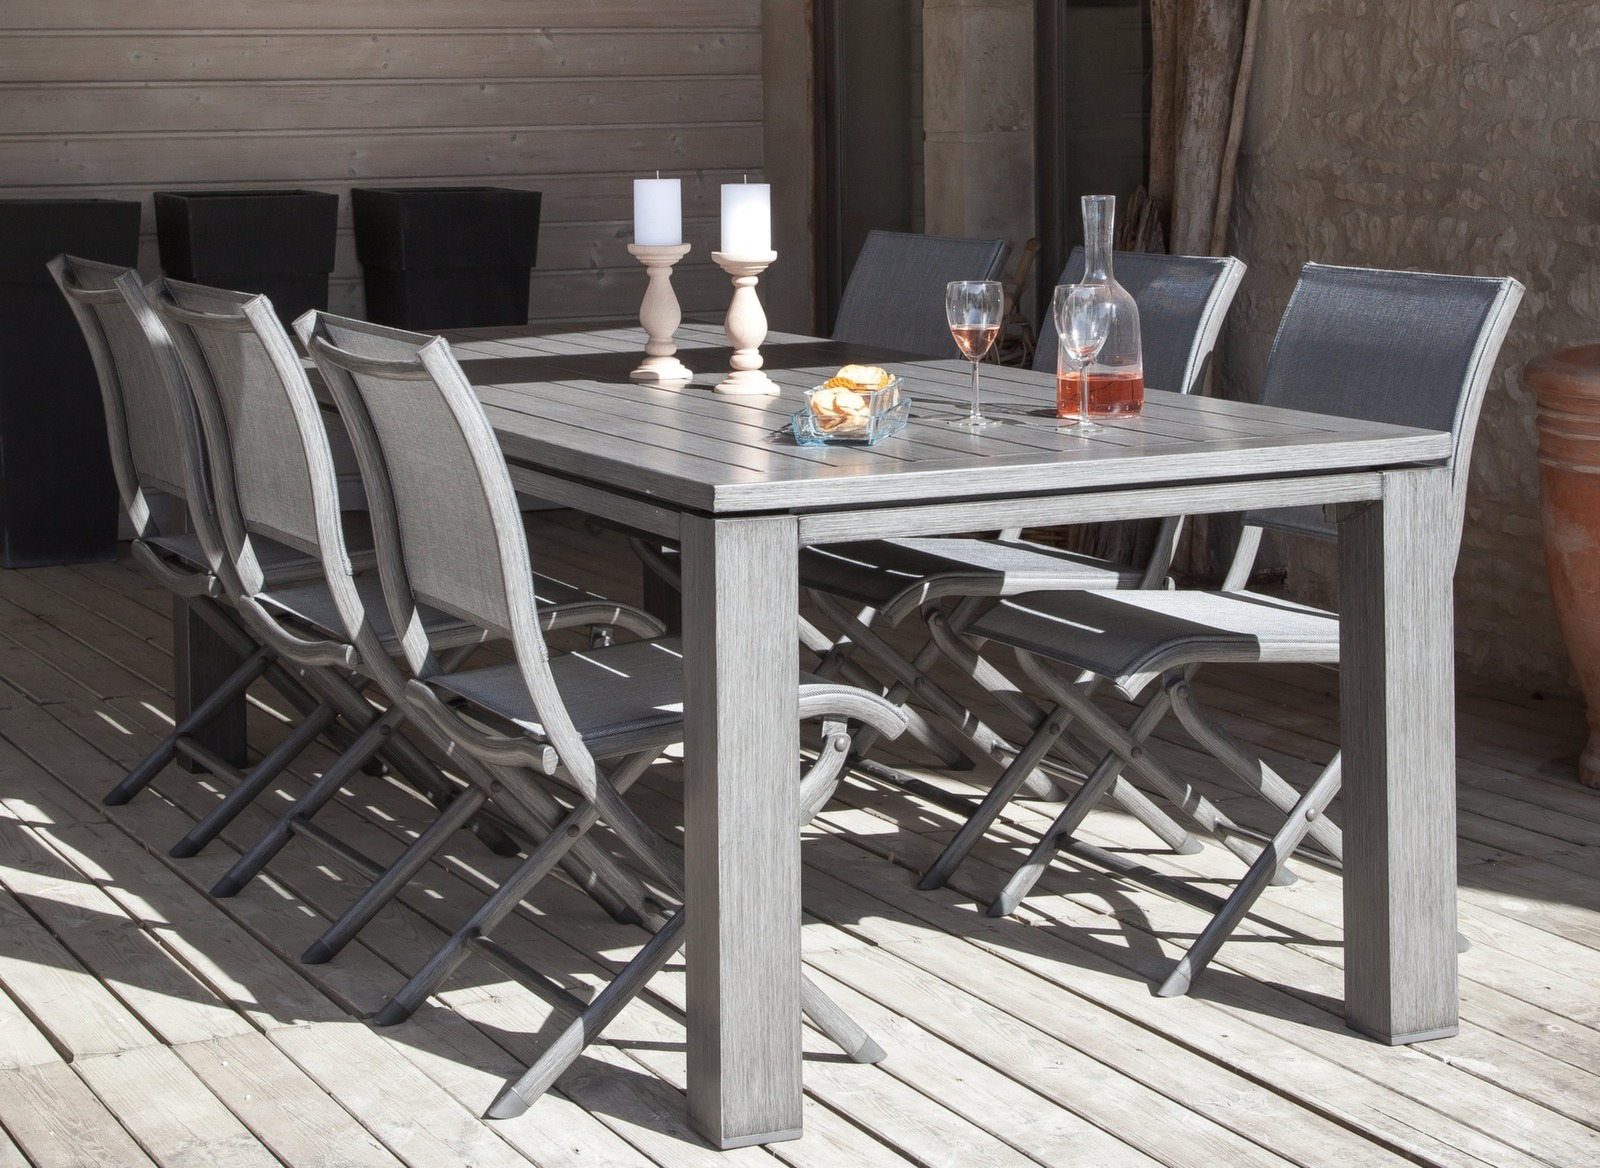 Table aluminium - Table Latino 180cm - Table de jardin Proloisirs